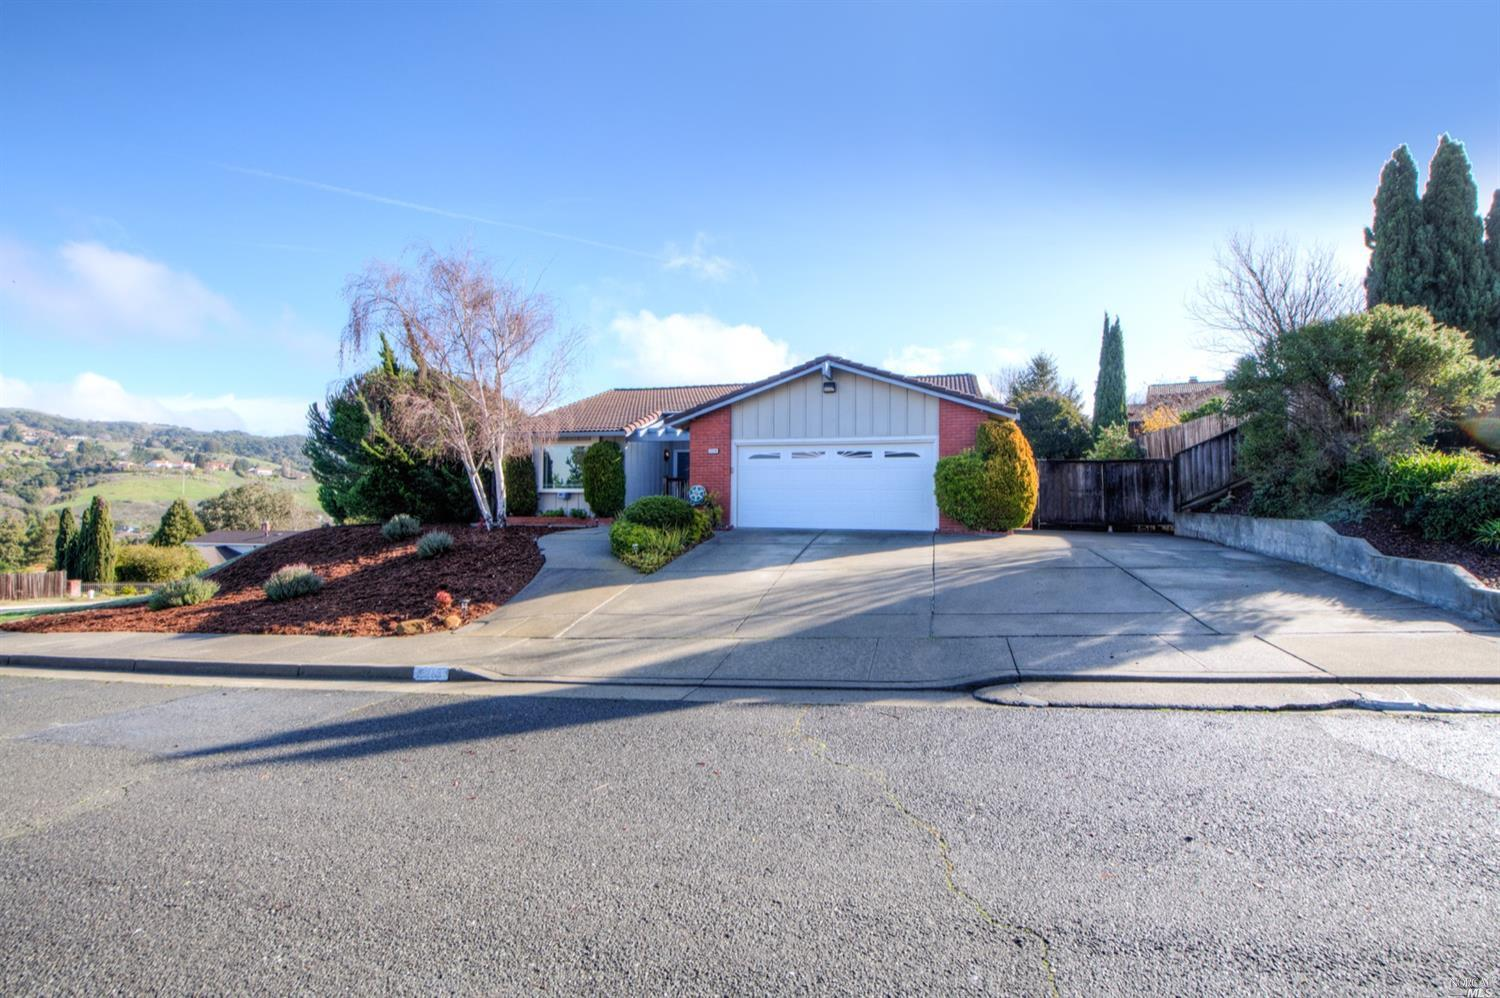 2216 BRISTLECONE DRIVE, RICHMOND, CA 94803